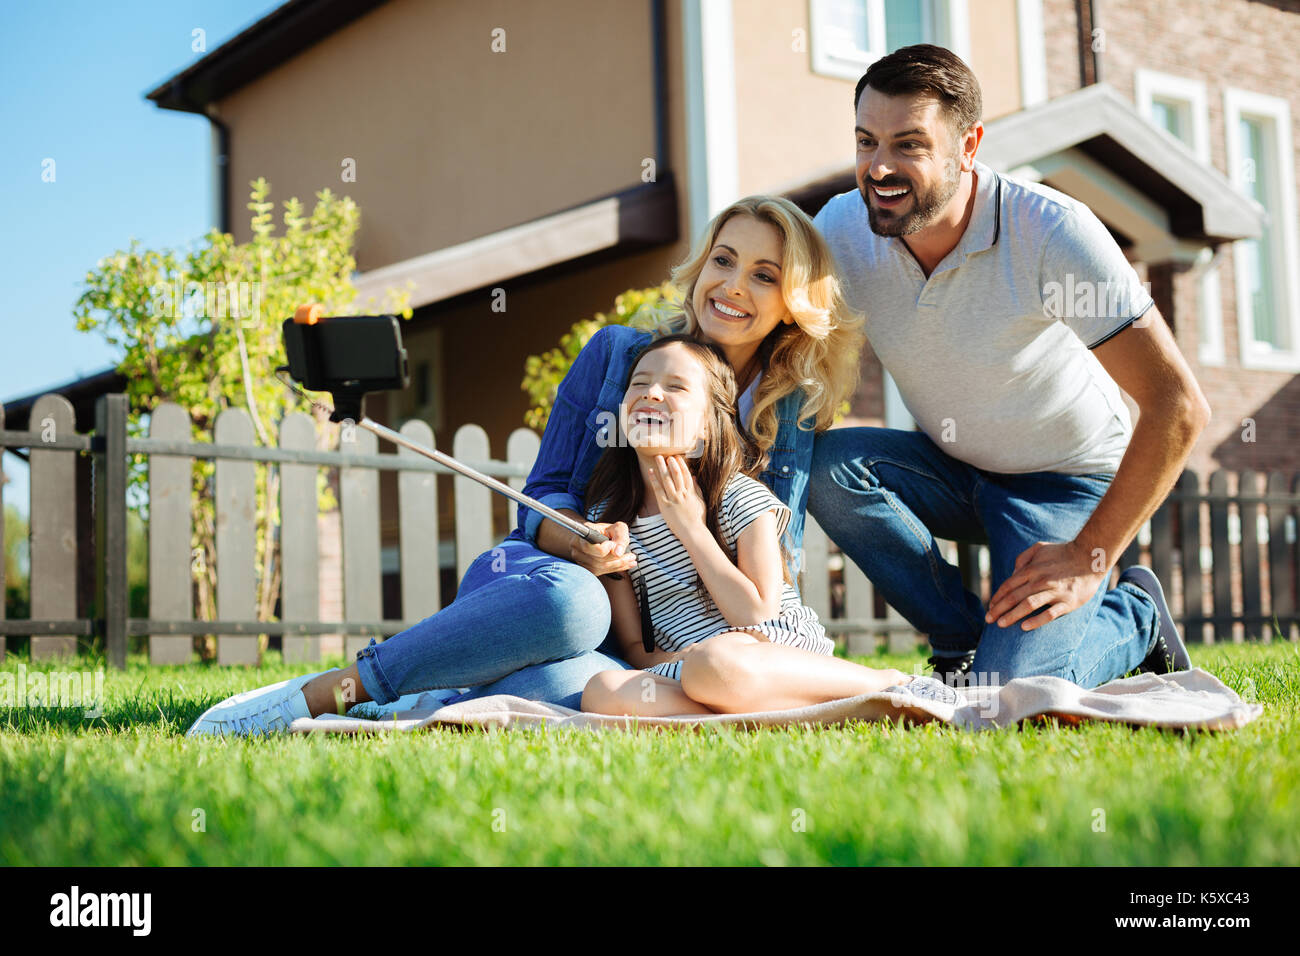 Adorable girl taking selfies of her family on picnic - Stock Image